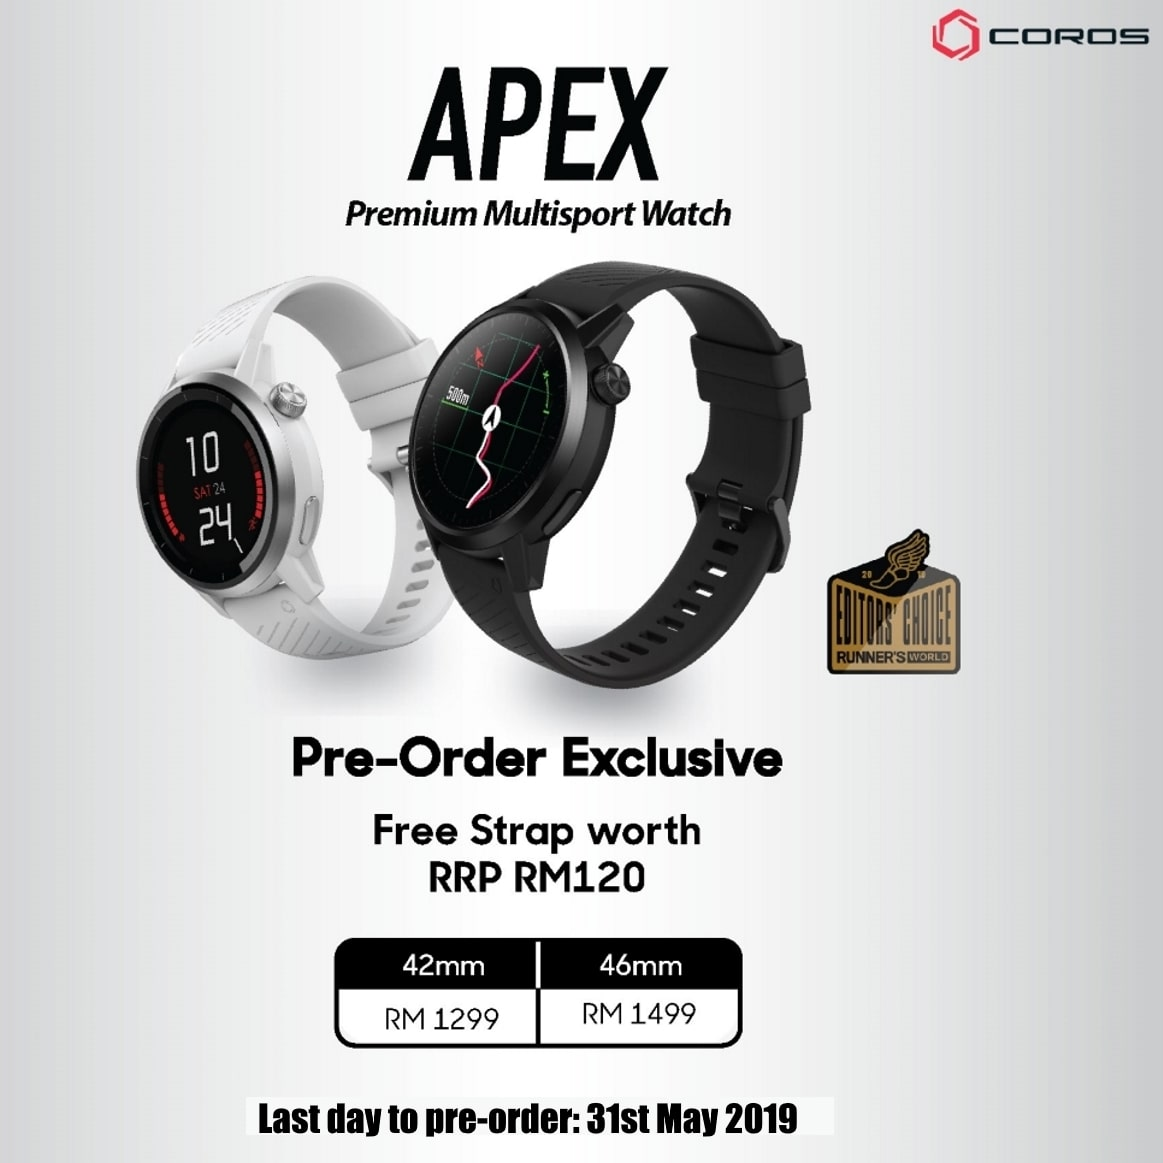 Pre-order Apex and get free strap